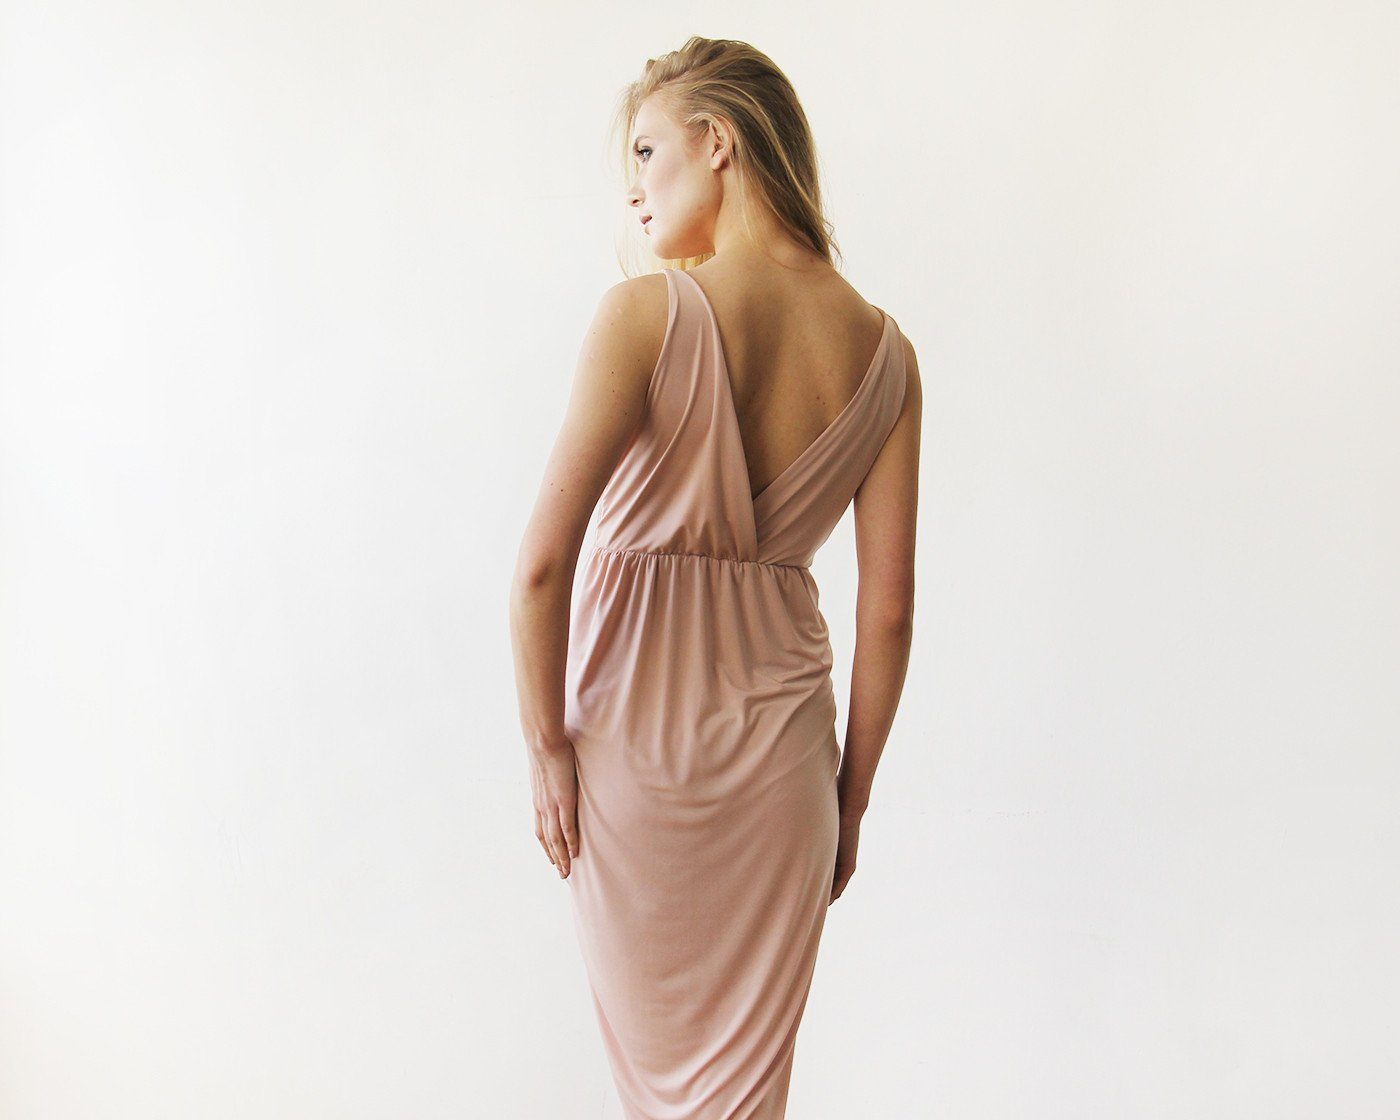 Pink Blush Wrap Tulip Dress with V Neckline SALE 1154 - Blushfashion